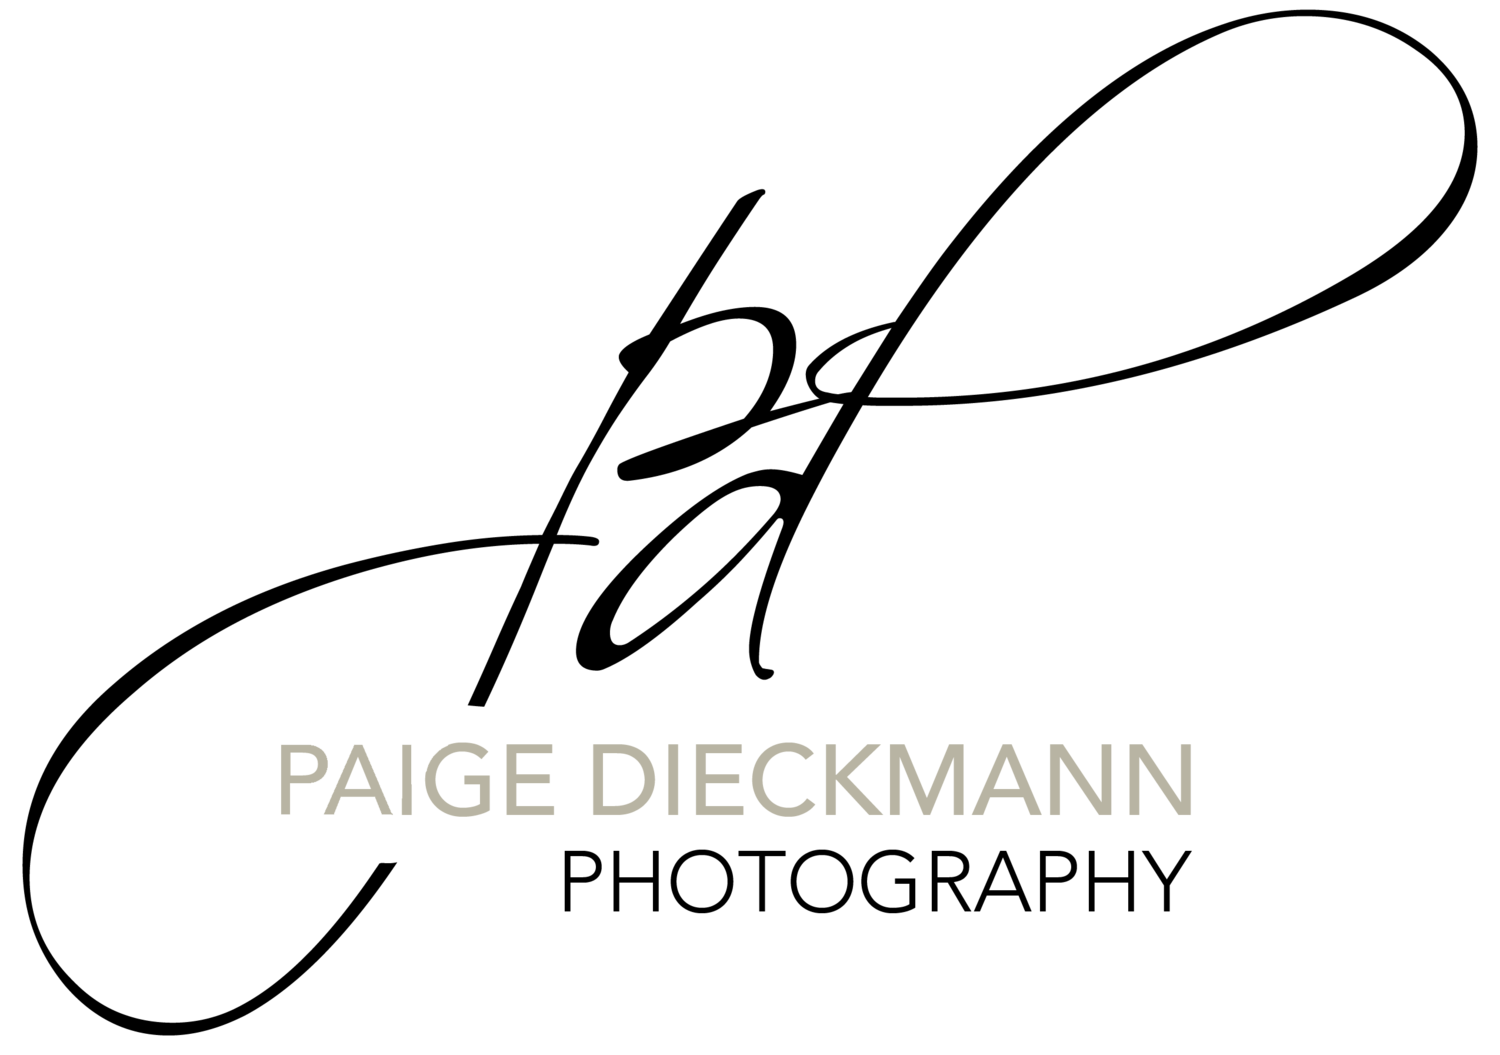 PAIGE DIECKMANN PHOTOGRAPHY